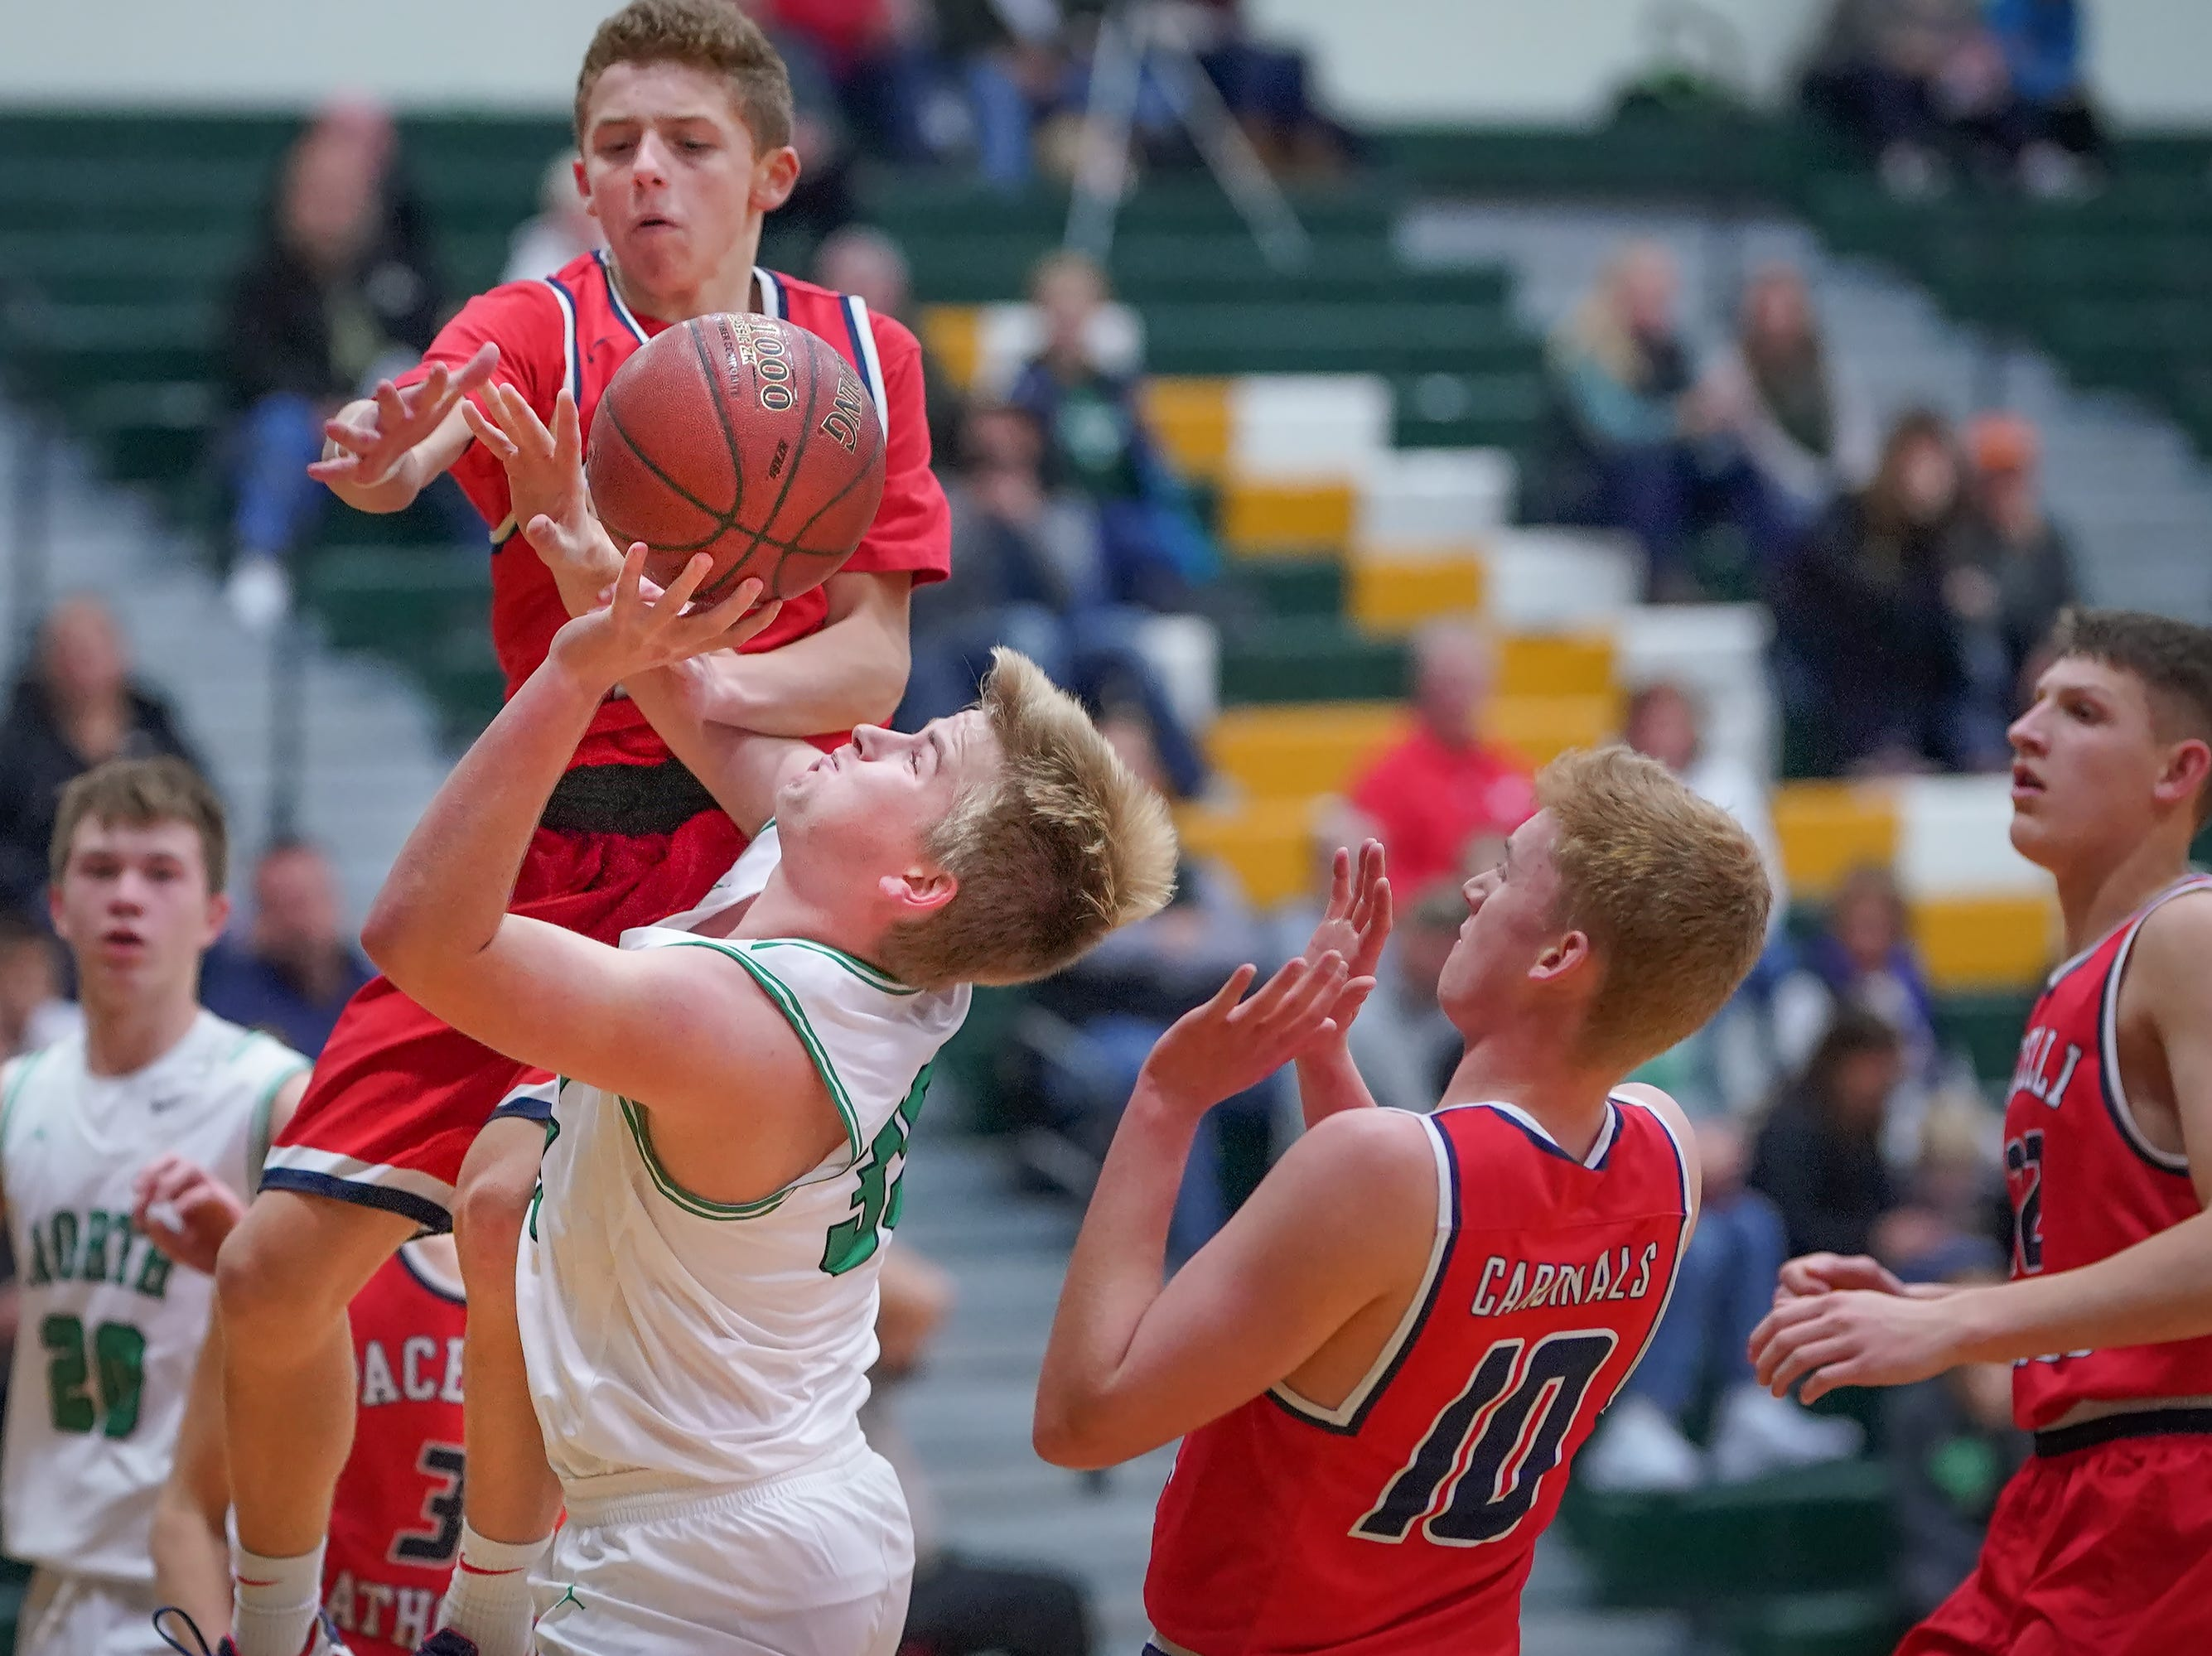 Scott Swanlund (35) of Oshkosh North gets fouled by Mason Schlagenhaft (1) of Pacelli. The Oshkosh North Spartans hosted the Stevens Point Pacelli Catholic Cardinals in the Friday night game of the Fox River Brewing Thanksgiving Classic Tournament.